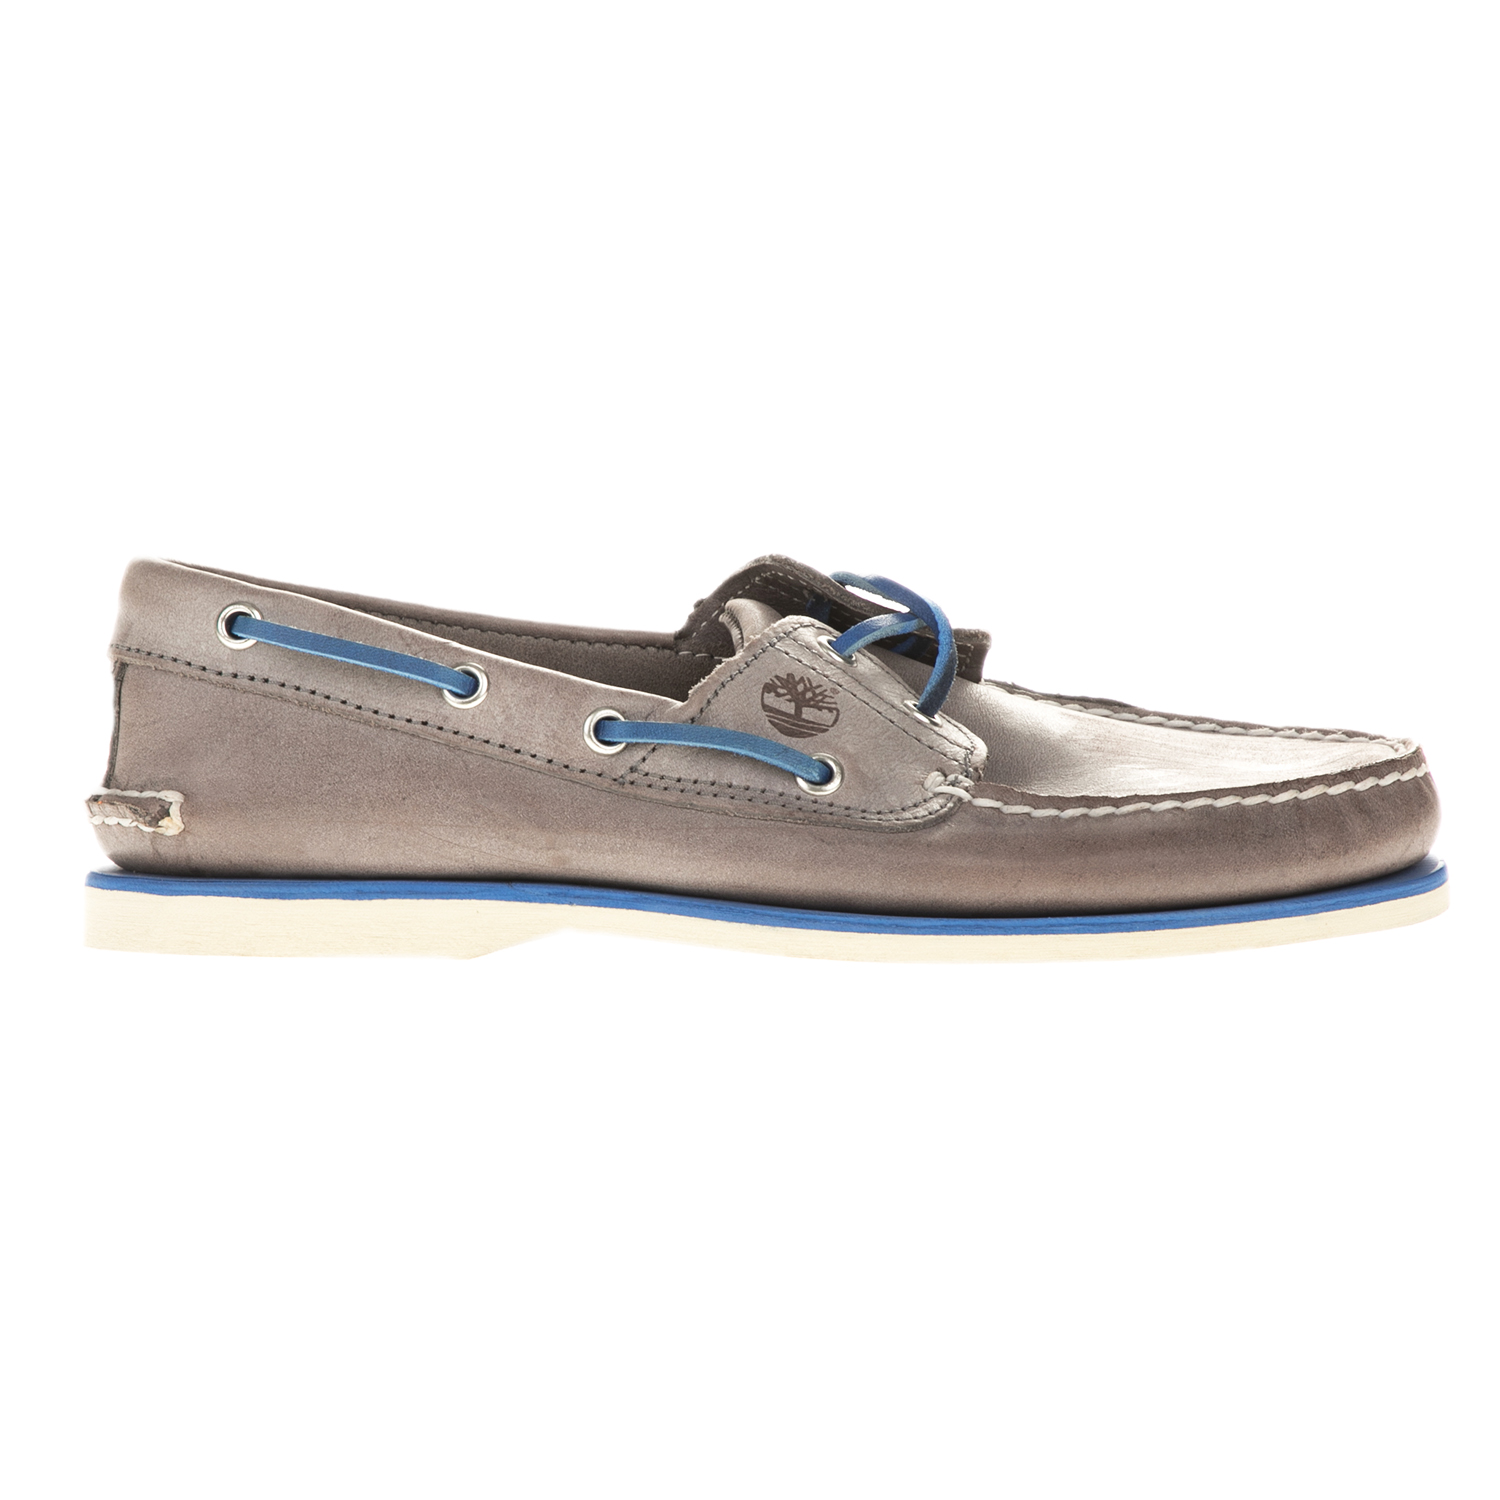 TIMBERLAND - Ανδρικά boat shoes TIMBERLAND A16KC-A CLASSIC BOAT γκρι ανδρικά παπούτσια boat shoes